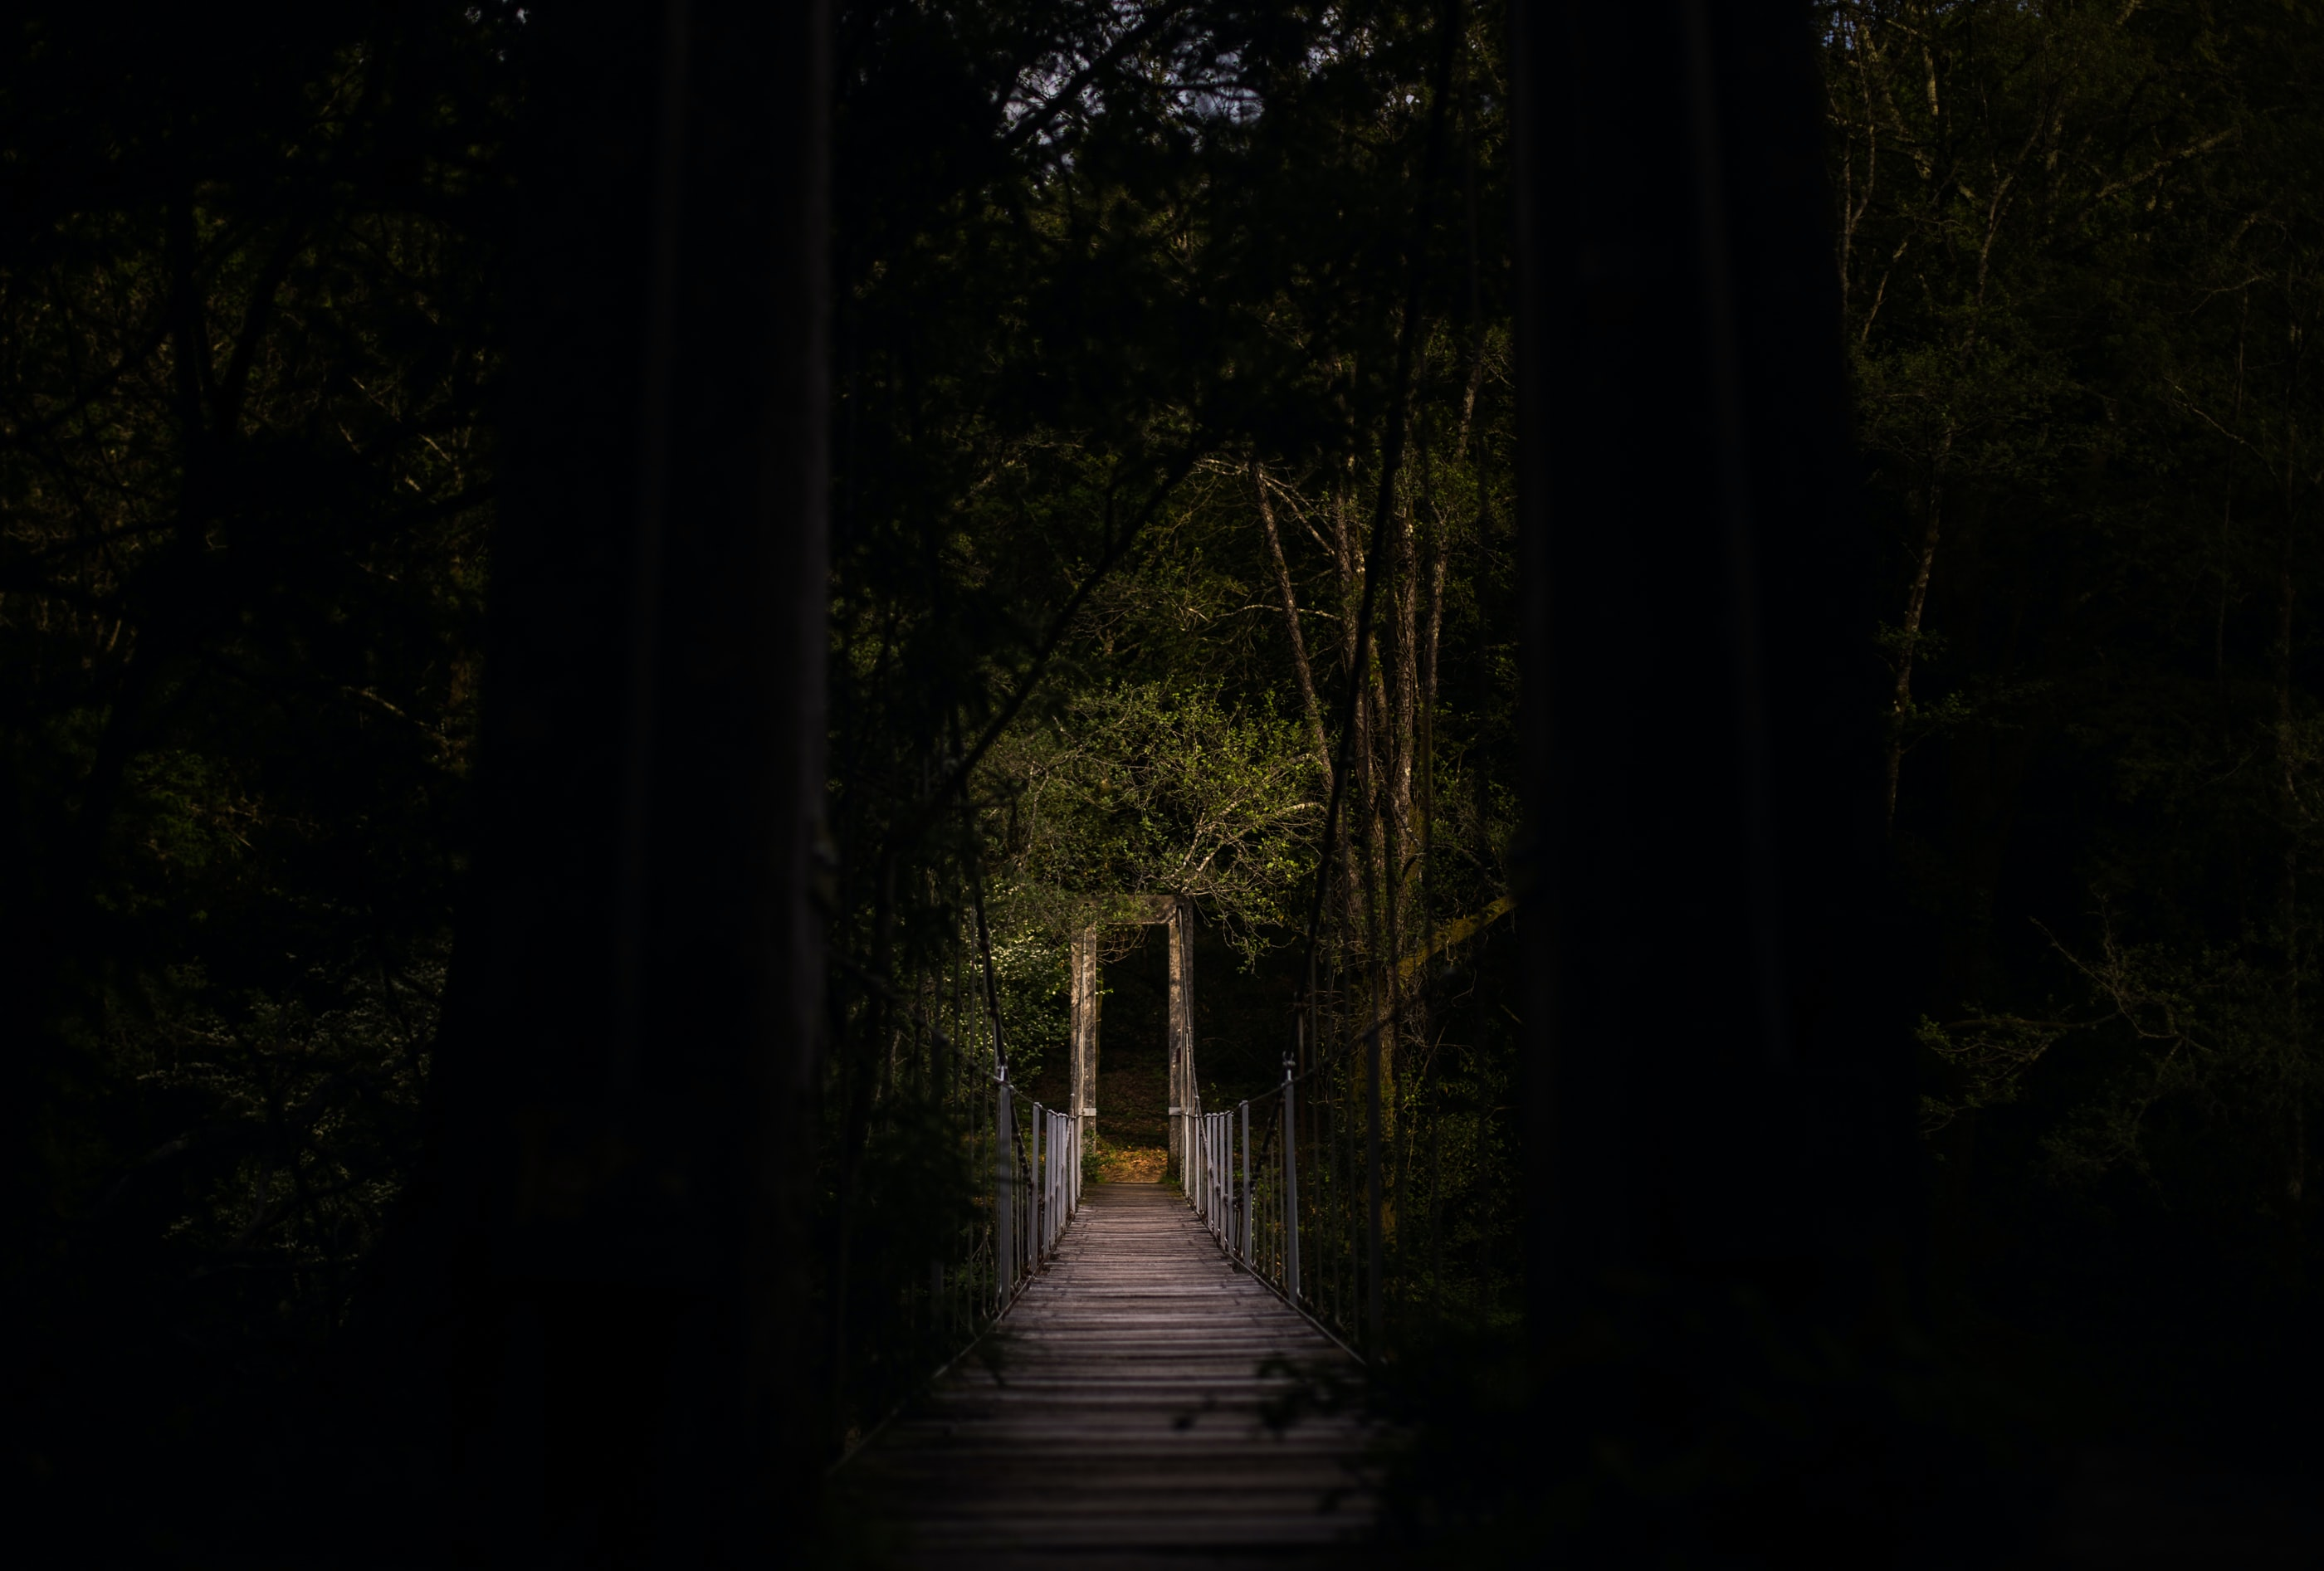 A wooden suspension bridge in a dark forest